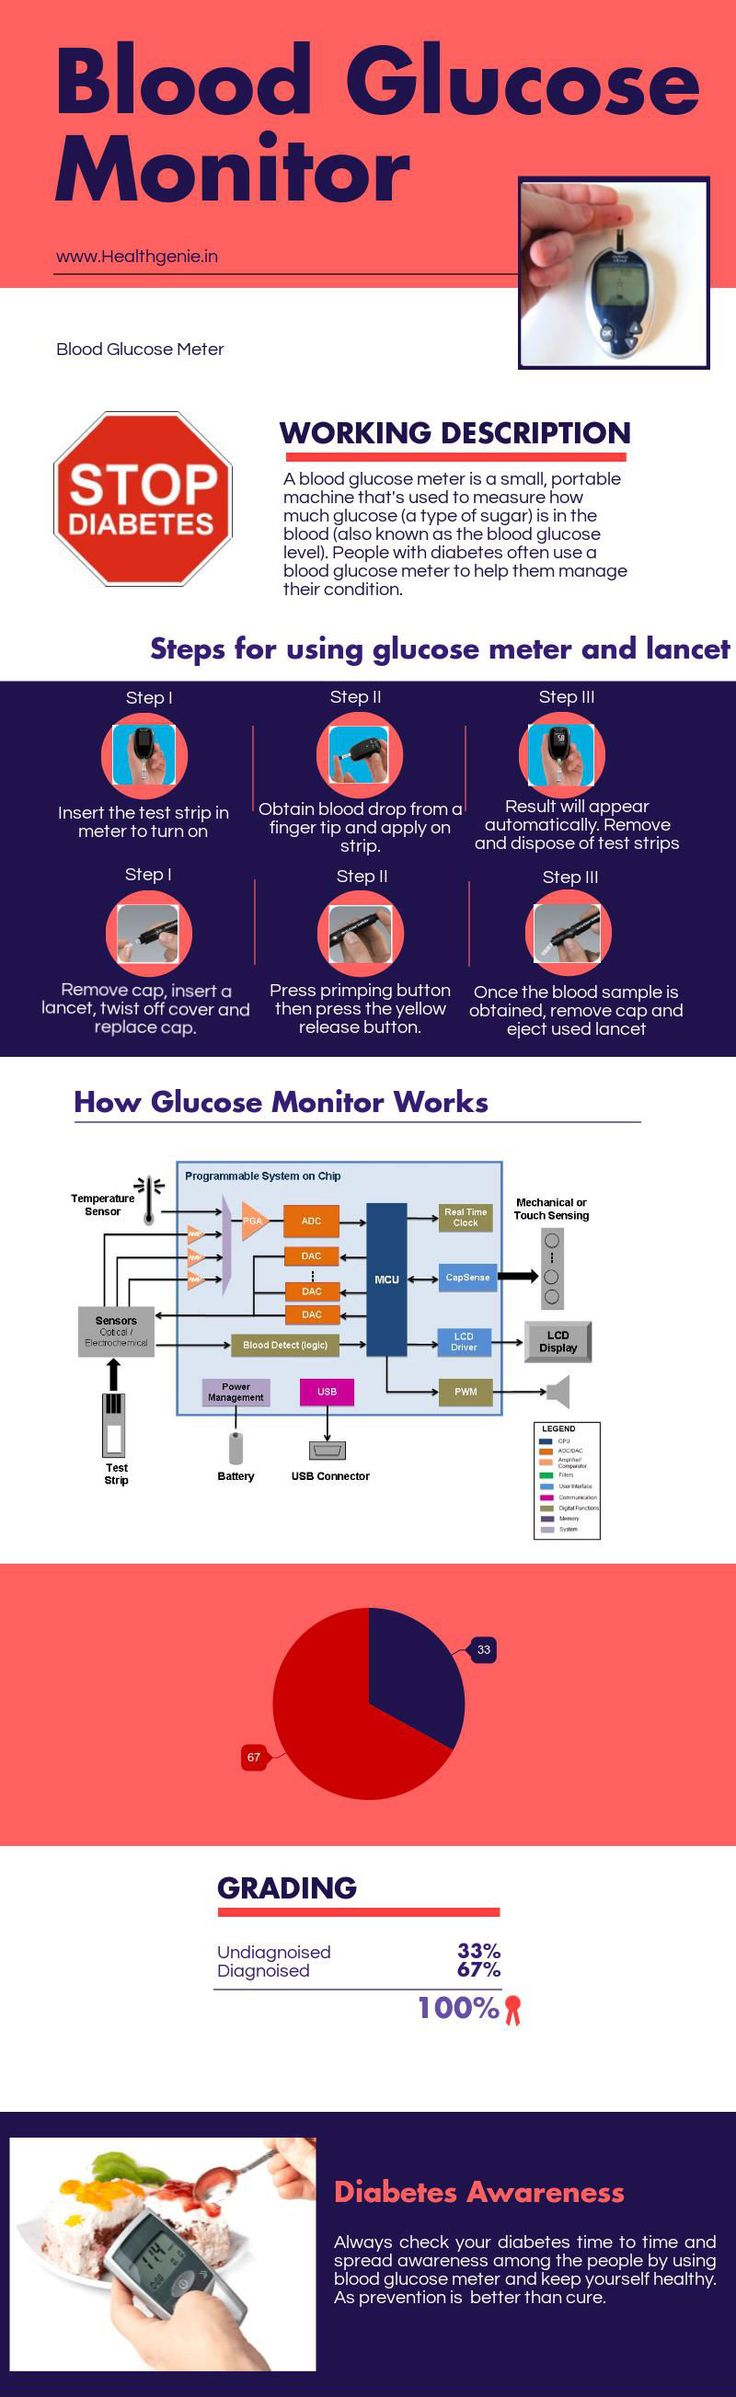 Most often of the people don't know how to use blood glucose monitor properly or how this blood glucose meter works. See this infographic and aware about your diabetes concern.